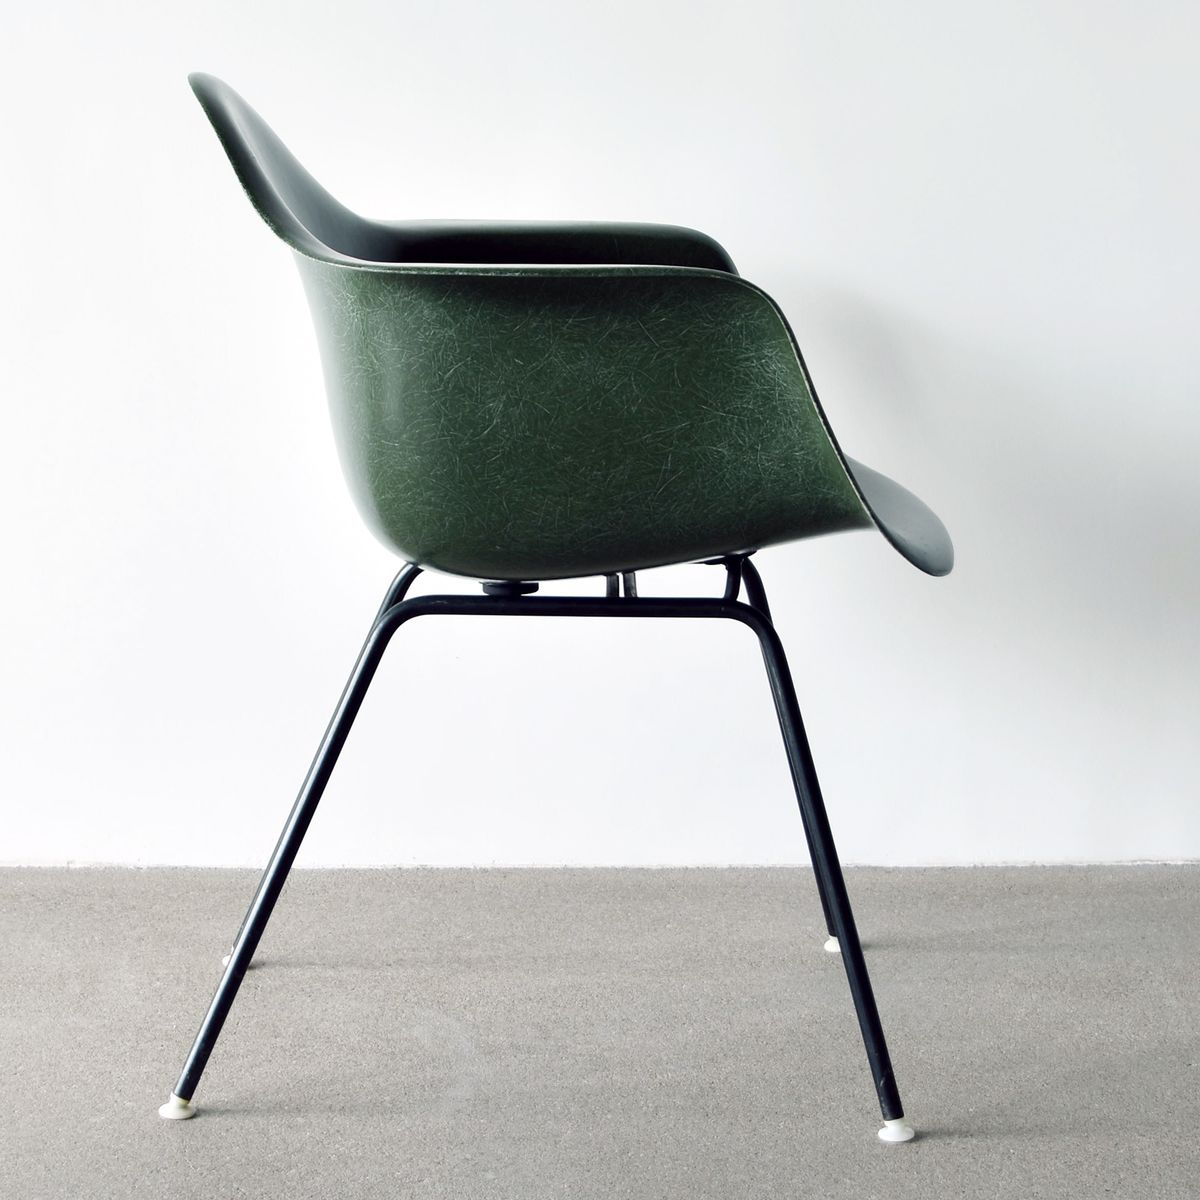 olive green dax chair by charles and ray eames for herman miller 1975 for sale at pamono. Black Bedroom Furniture Sets. Home Design Ideas